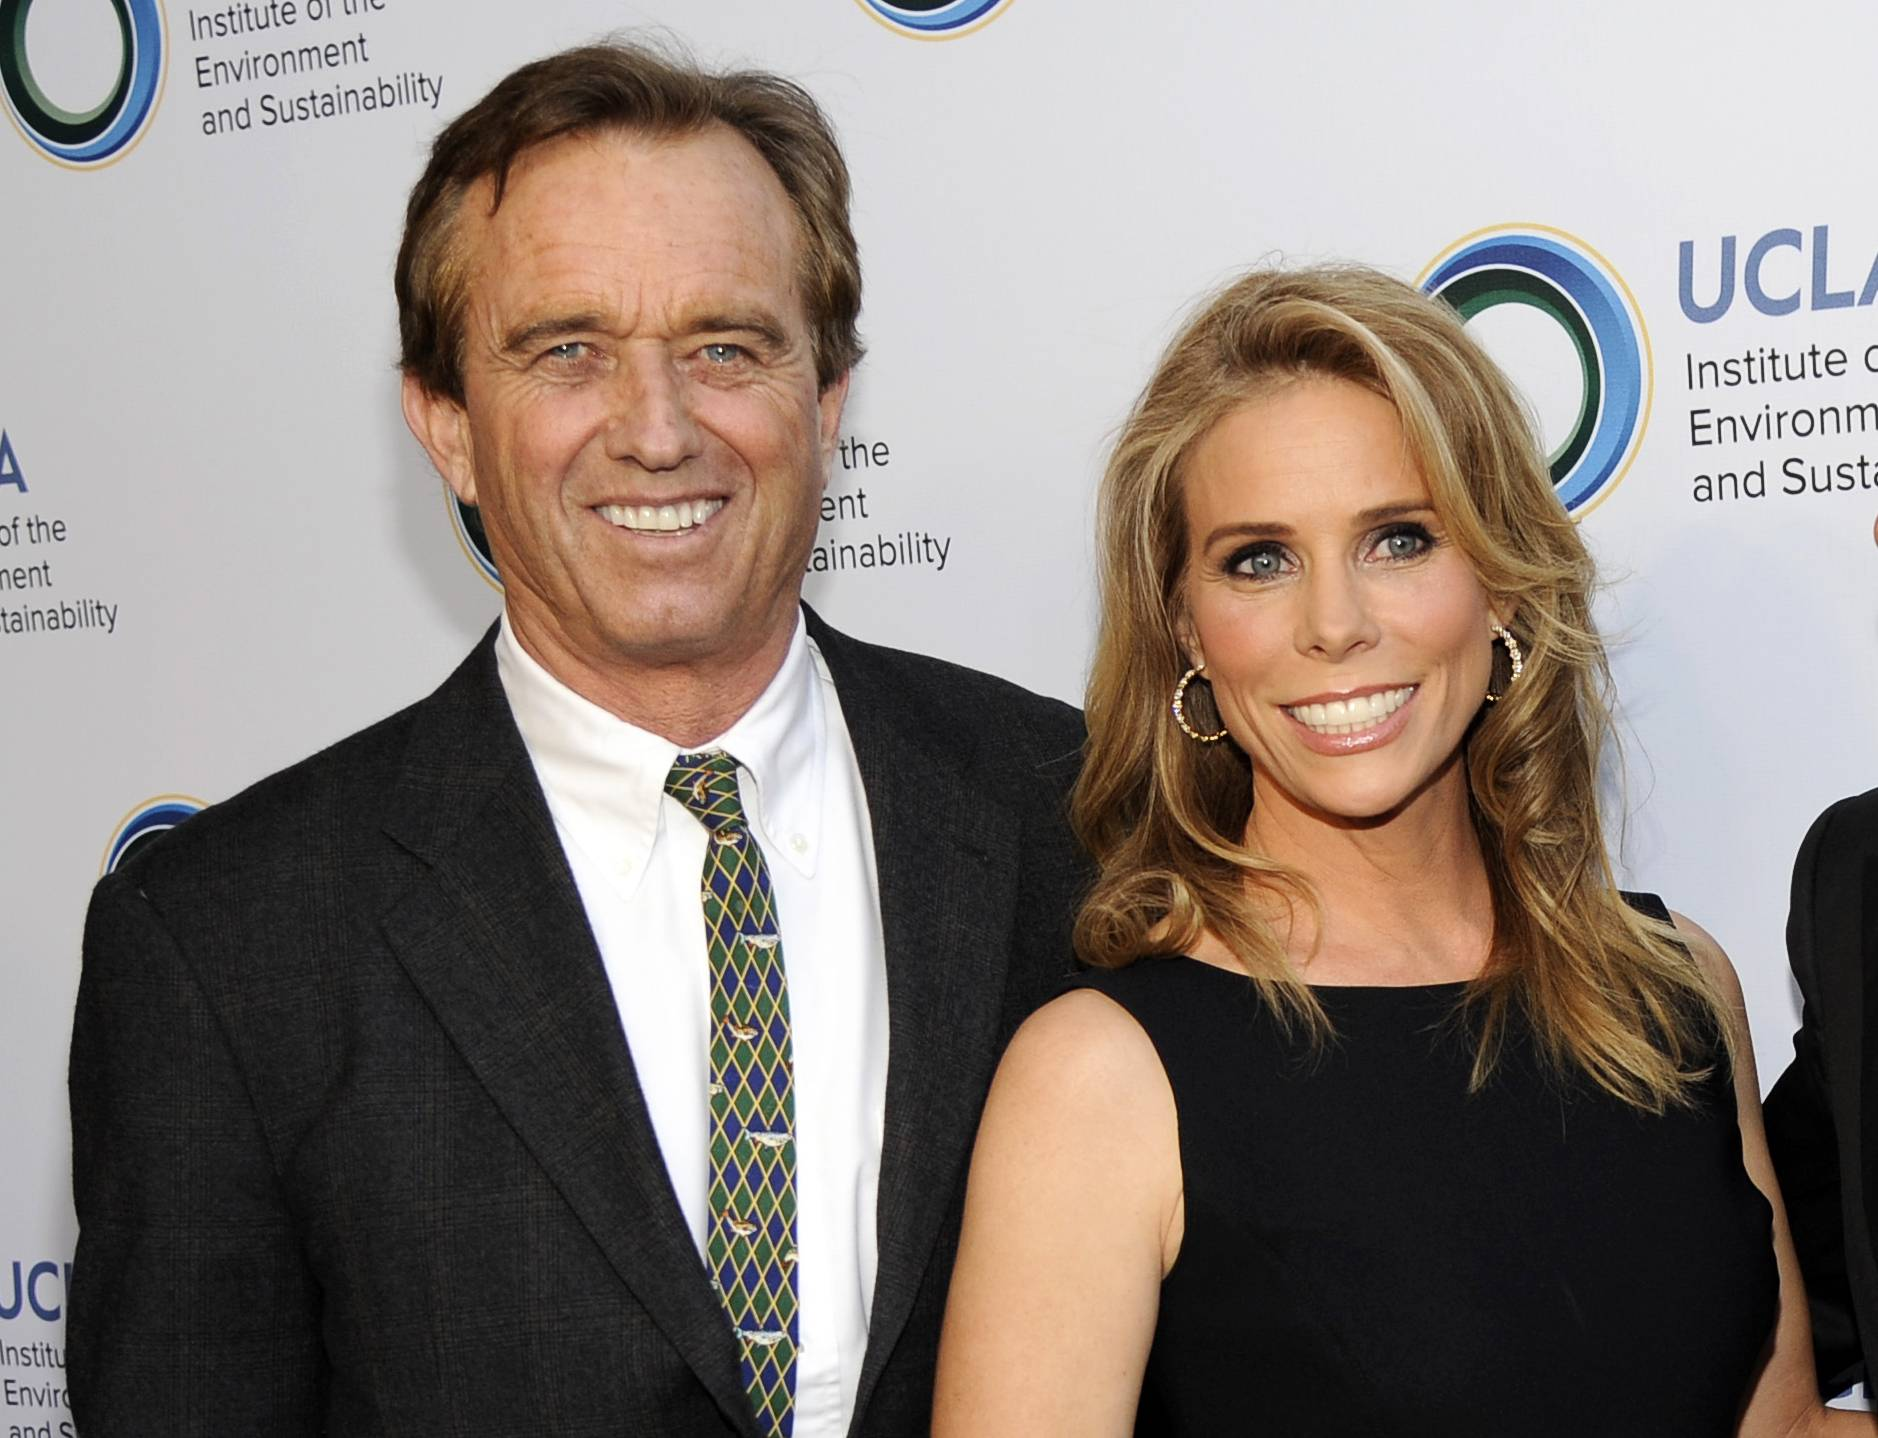 Cheryl Hines and Robert F. Kennedy Jr. wed Saturday at the Kennedy compound in Hyannis Port, Mass.